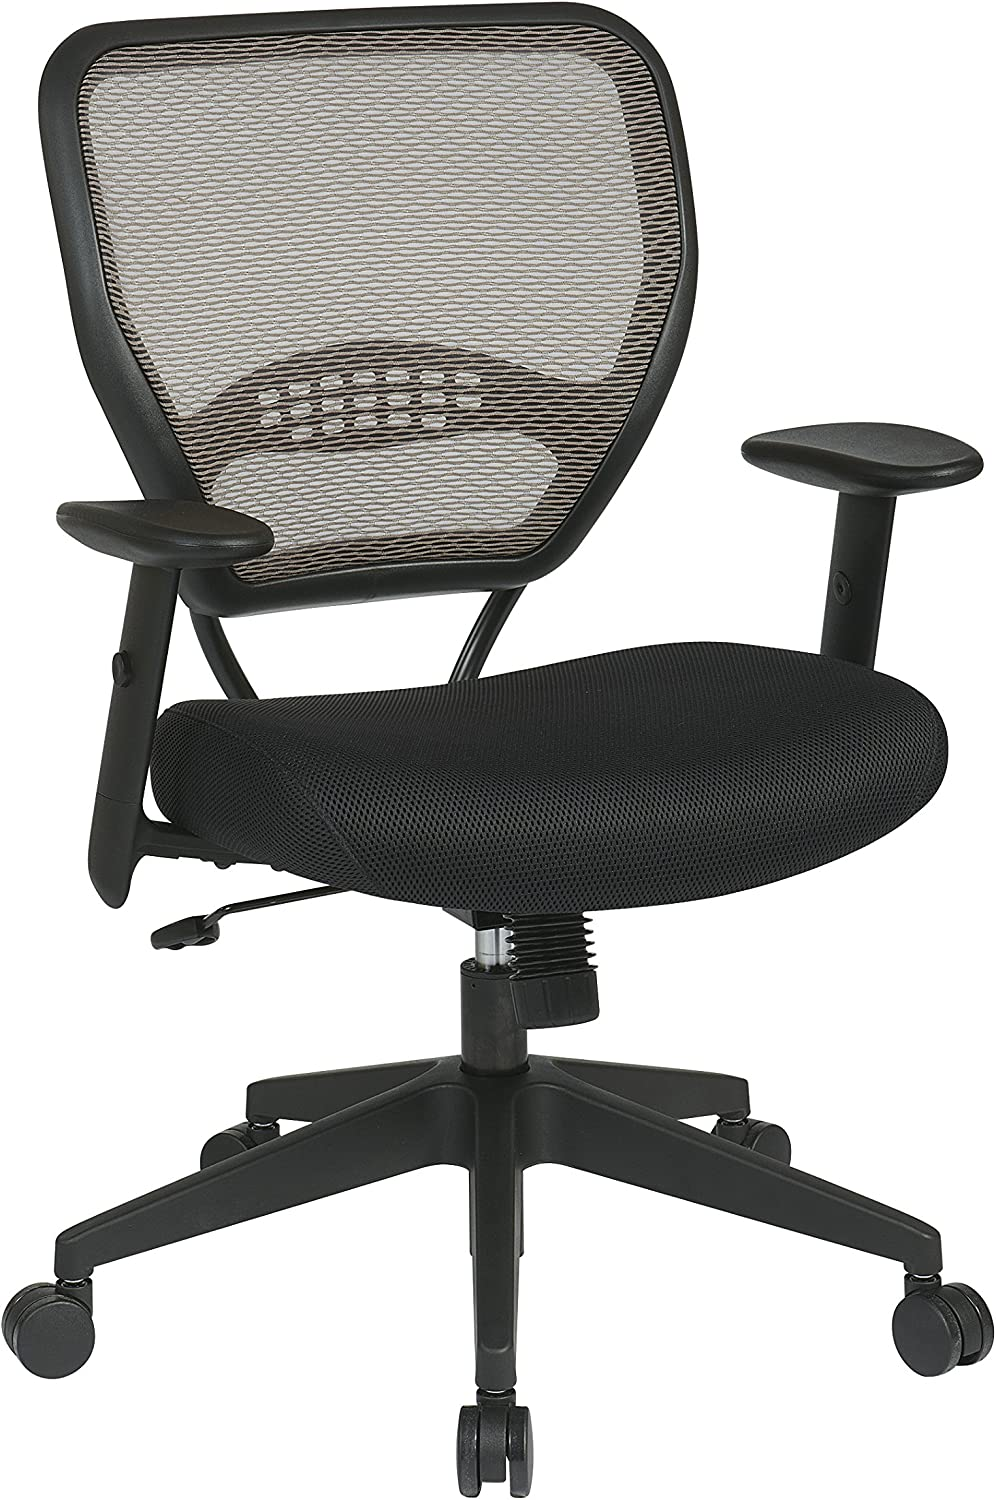 SPACE Seating AirGrid Latte Back and Black Padded Mesh Seat, 2-to-1 Synchro Tilt Control, Adjustable Arms and Tilt Tension with Nylon Base Managers Chair